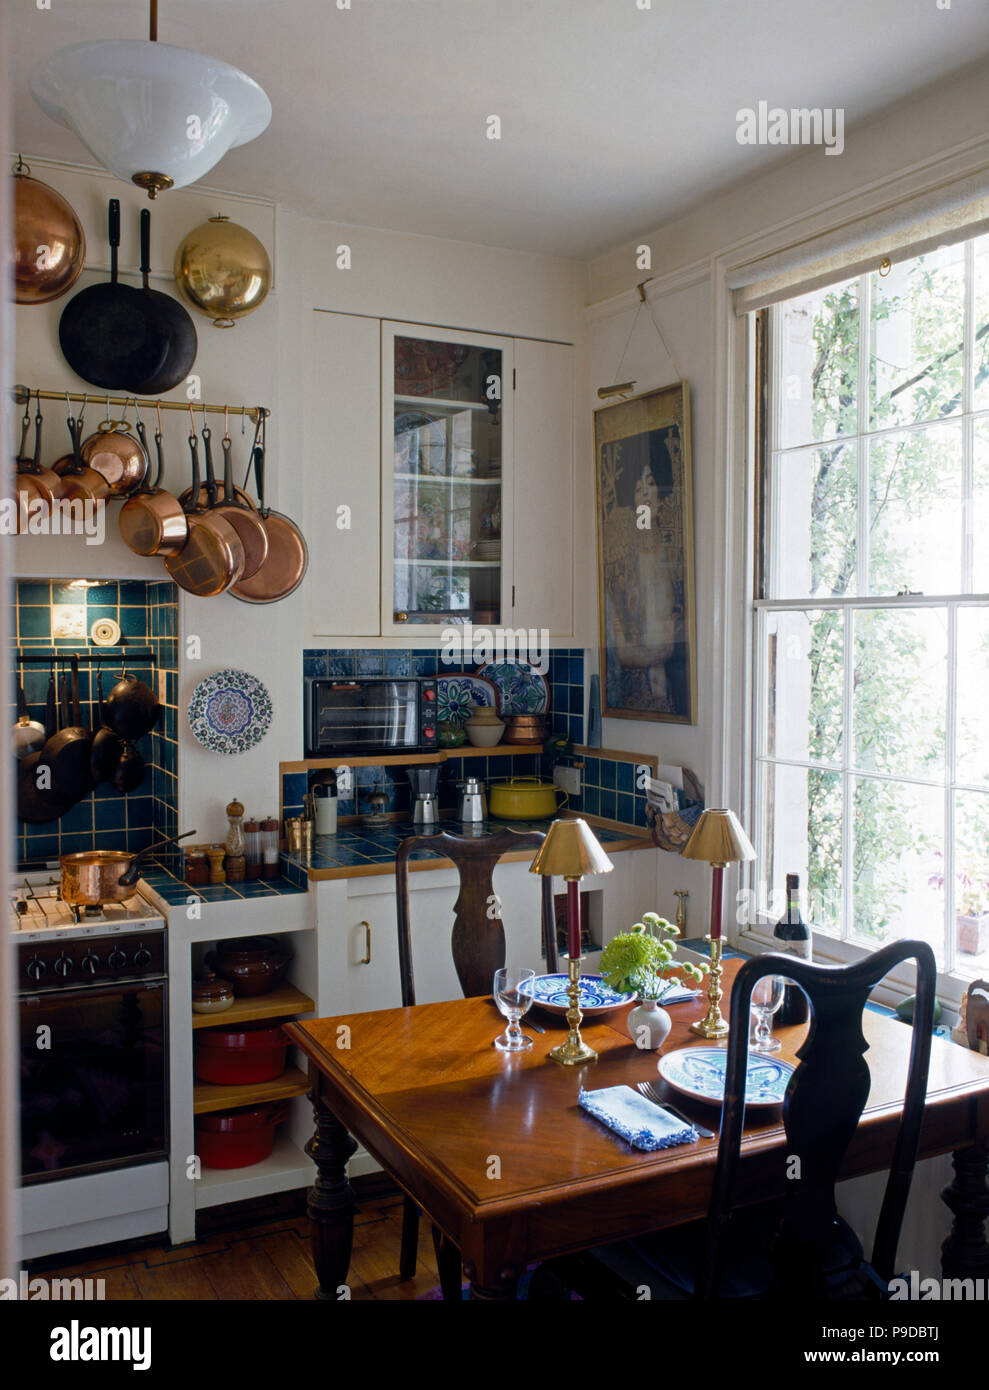 Small Table Set For Lunch In A Townhouse Kitchen With Vintage